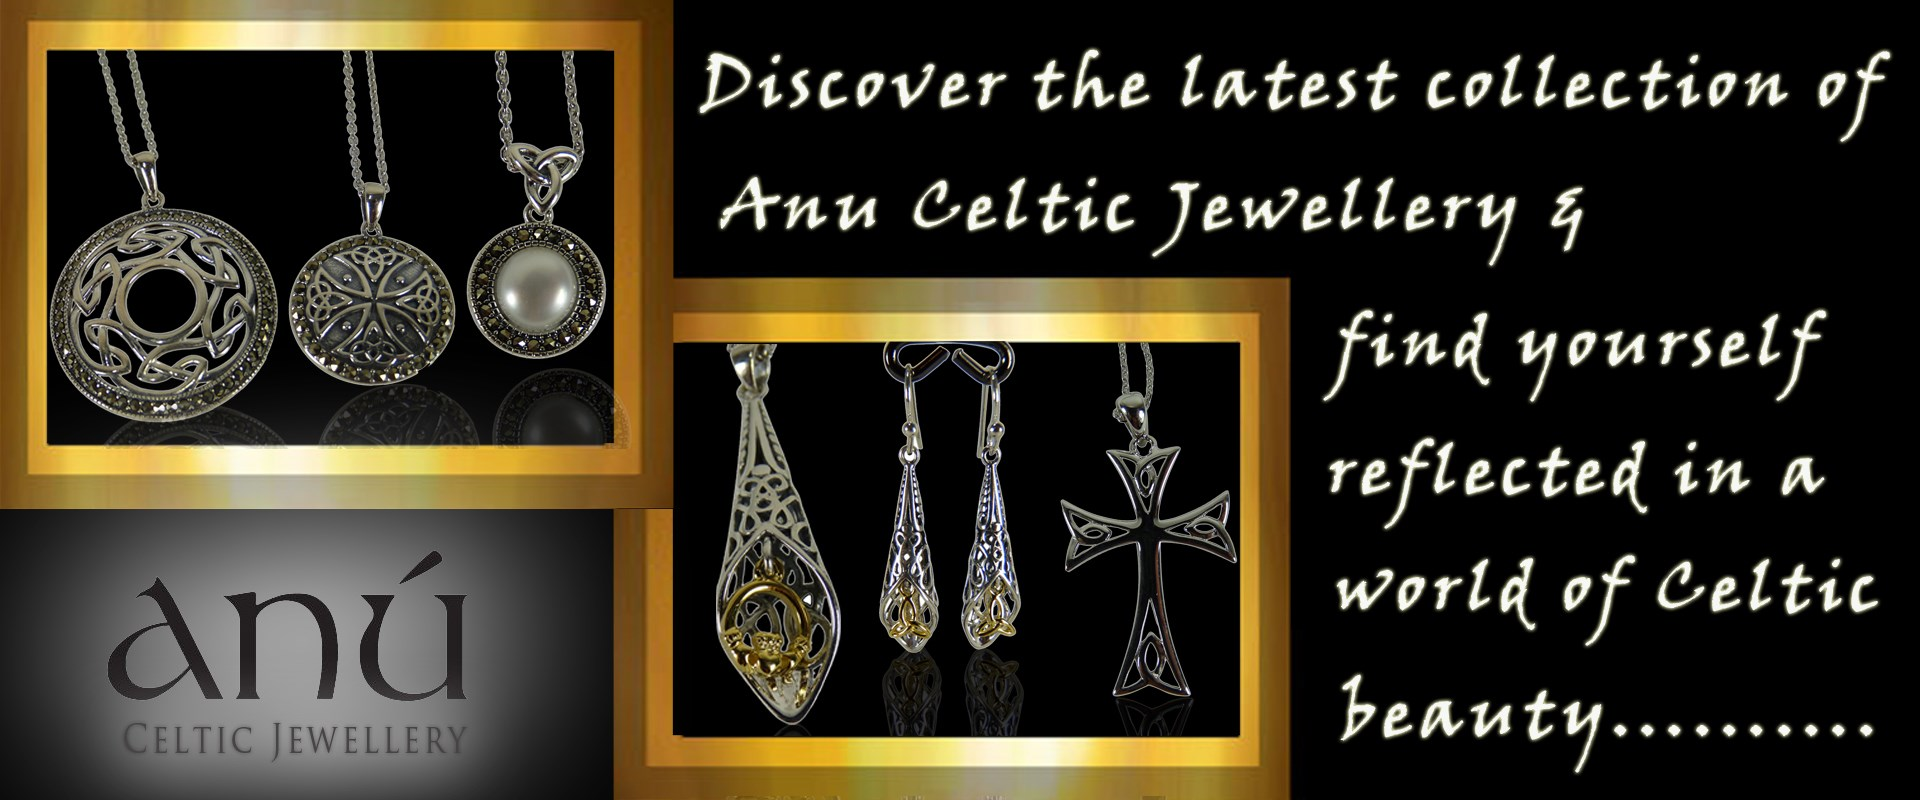 Anu Celtic Jewellery